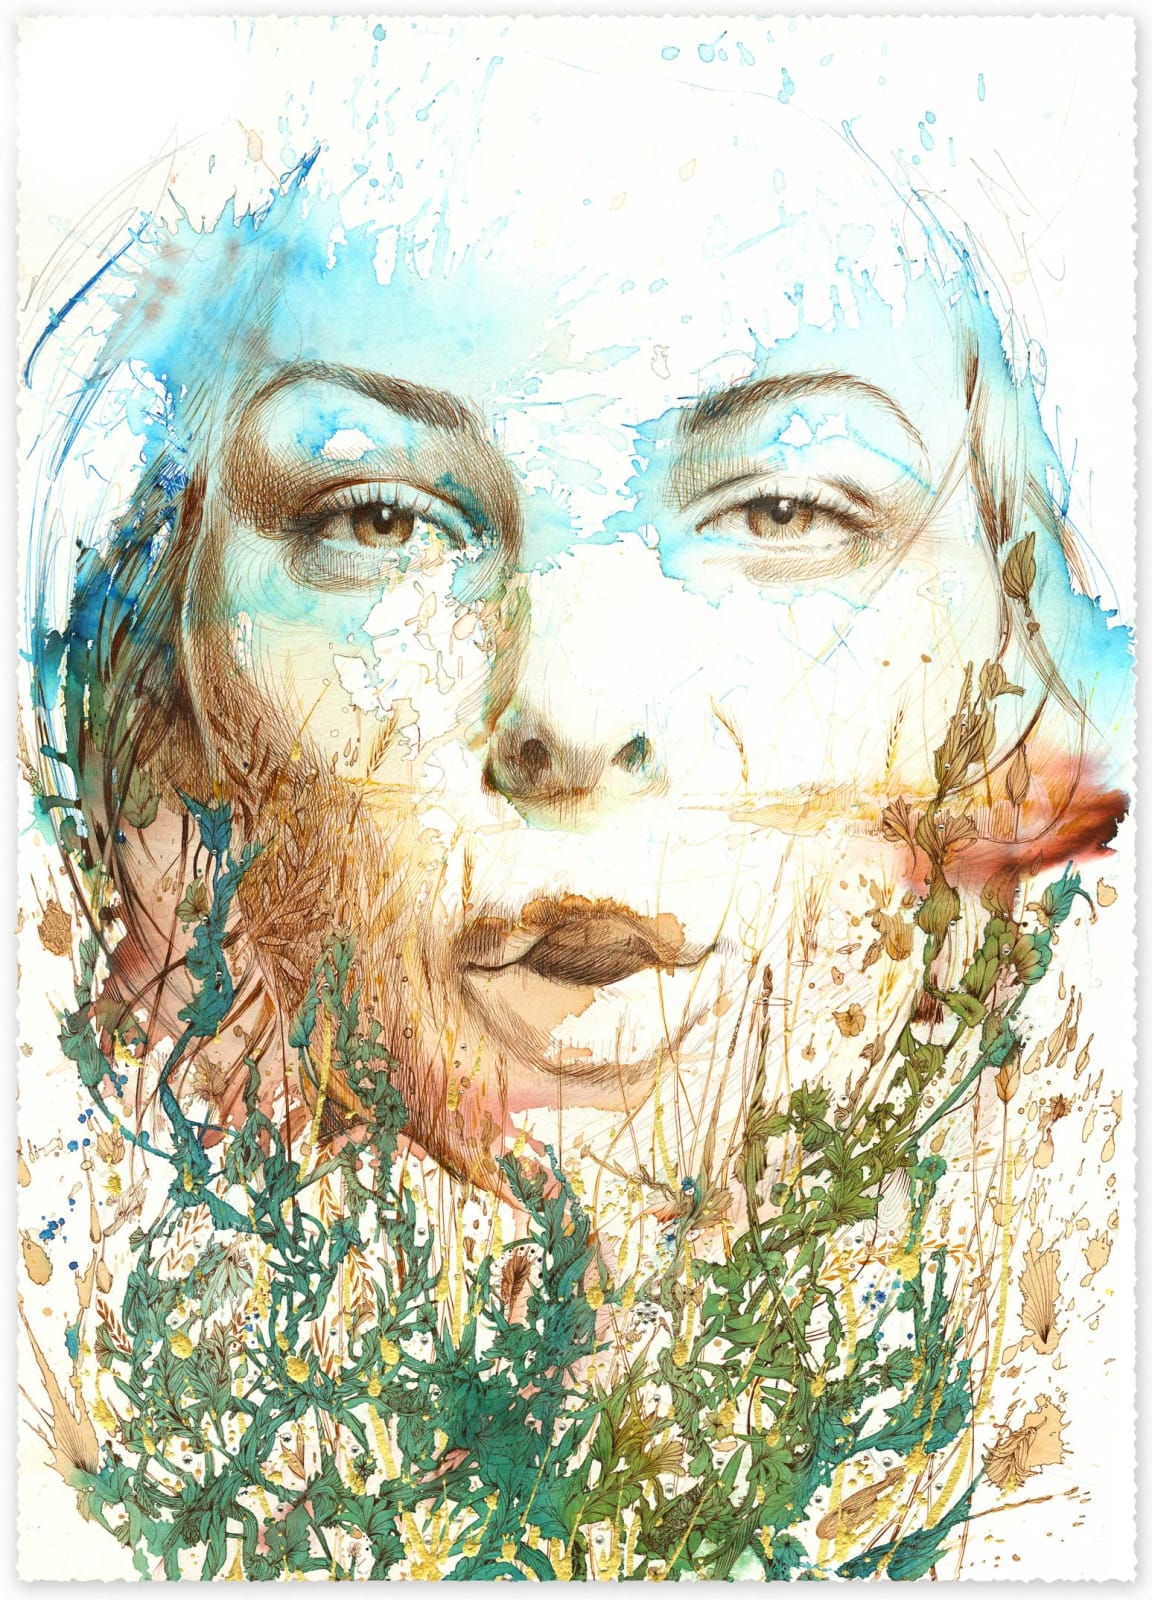 Carne Griffiths, The Meadow, 2020